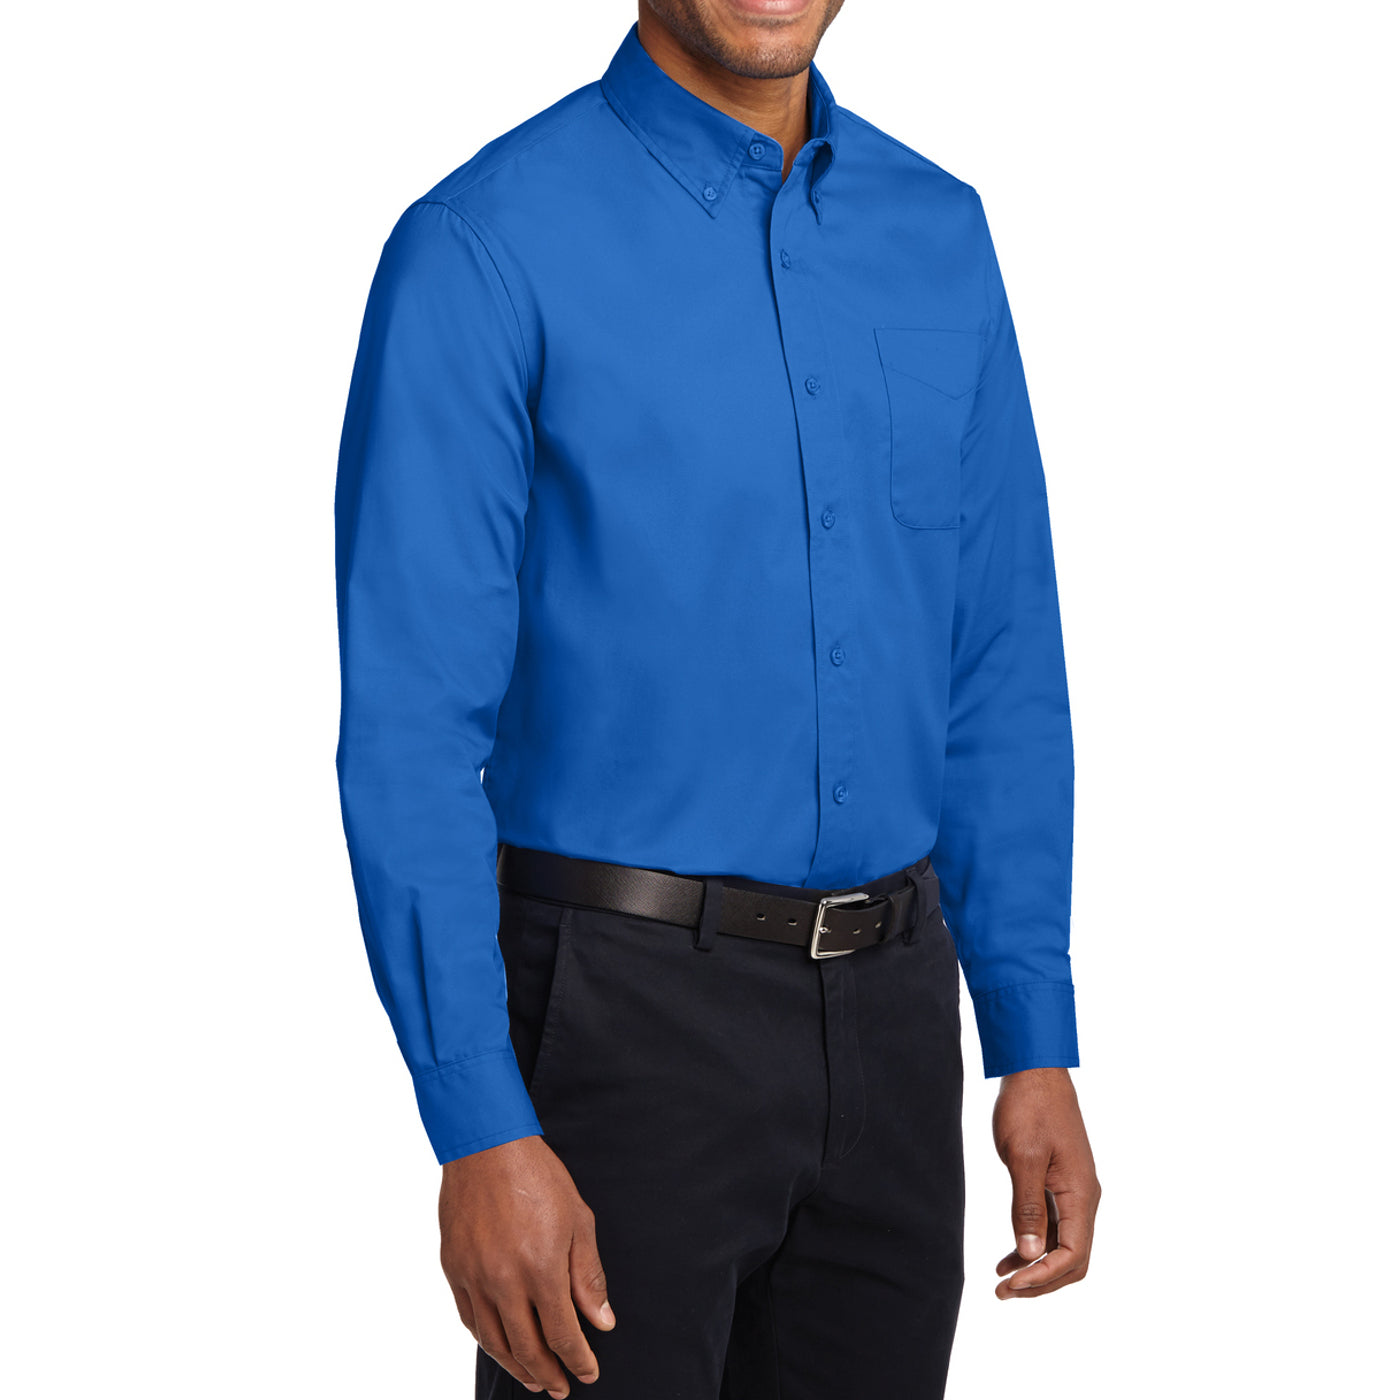 Men's Long Sleeve Easy Care Shirt - Strong Blue - Side